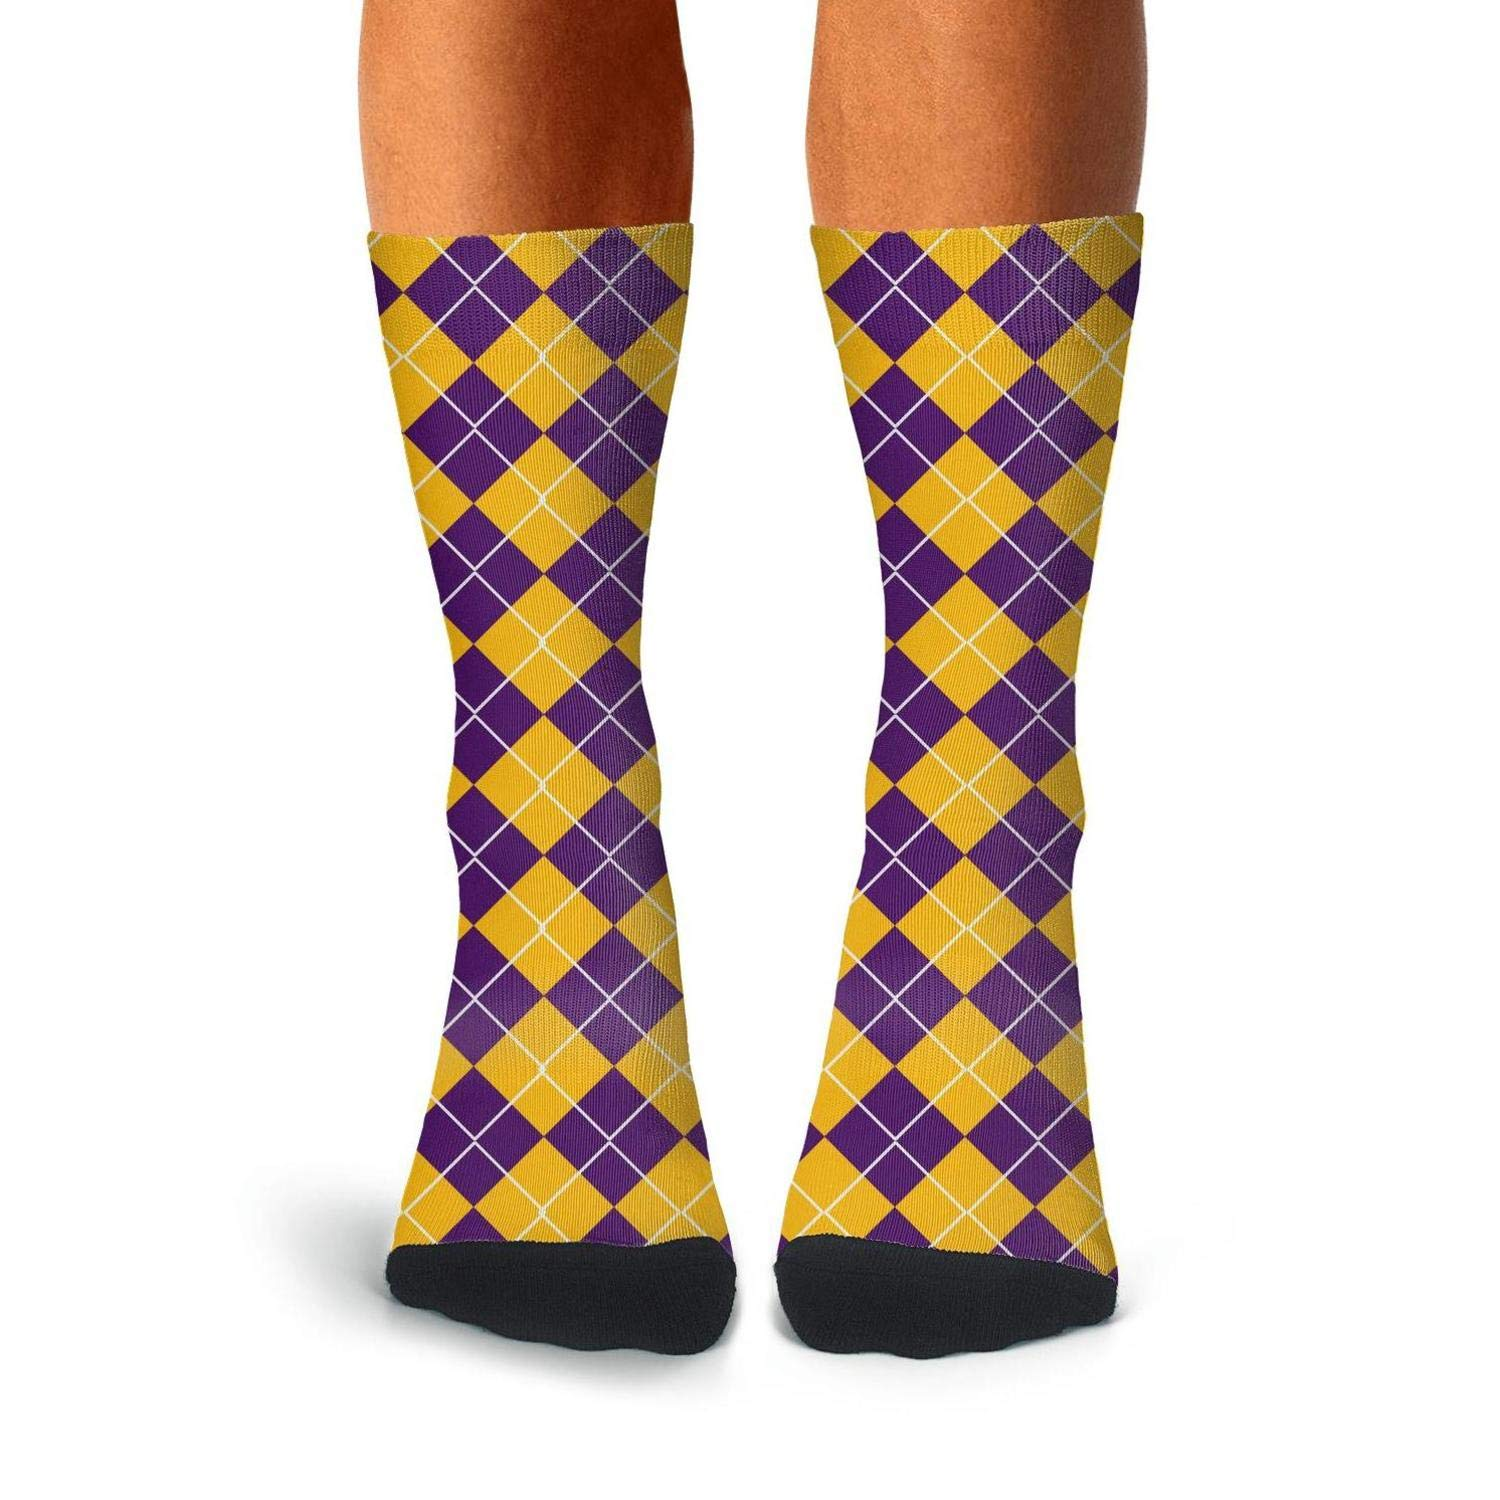 Youth socks los Crew Thin High Ankle Running Value